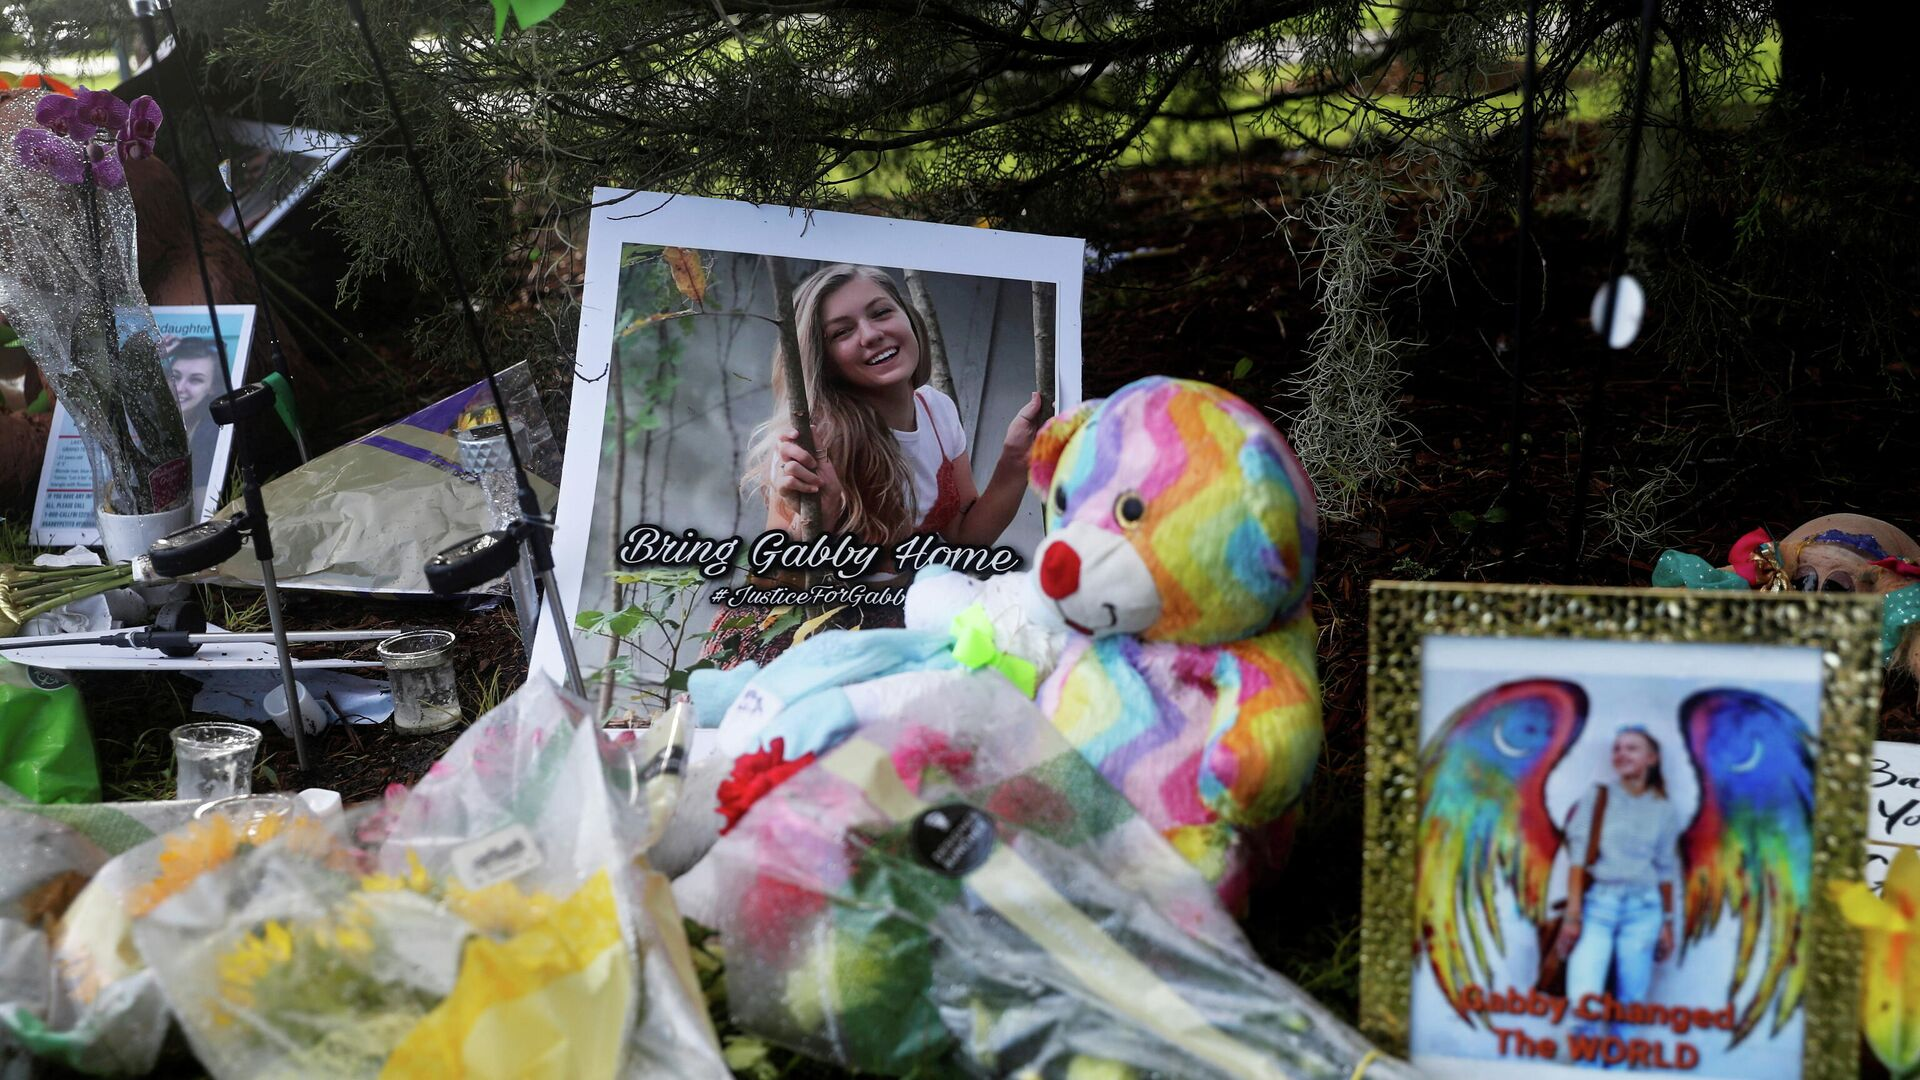 A makeshift memorial for Gabby Petito is seen, after a woman's body found in a Wyoming national park was identified as that of the missing 22-year-old travel blogger, near North Port City Hall in North Port, Florida, U.S., September 22, 2021 - Sputnik International, 1920, 26.09.2021